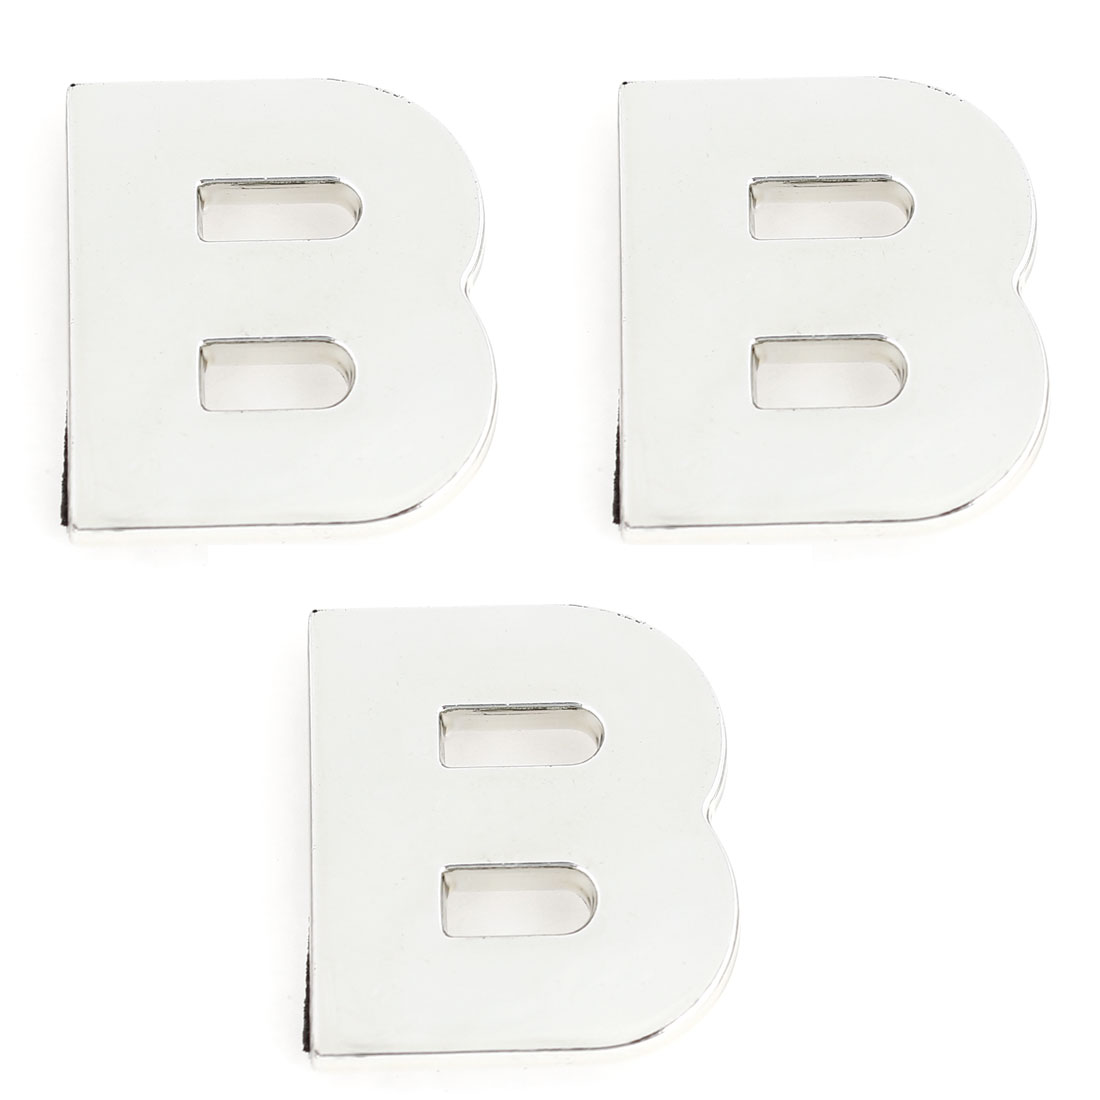 Car Plastic English Letter B Shape Emblem Stickers Decoration Silver Tone 3 Pcs